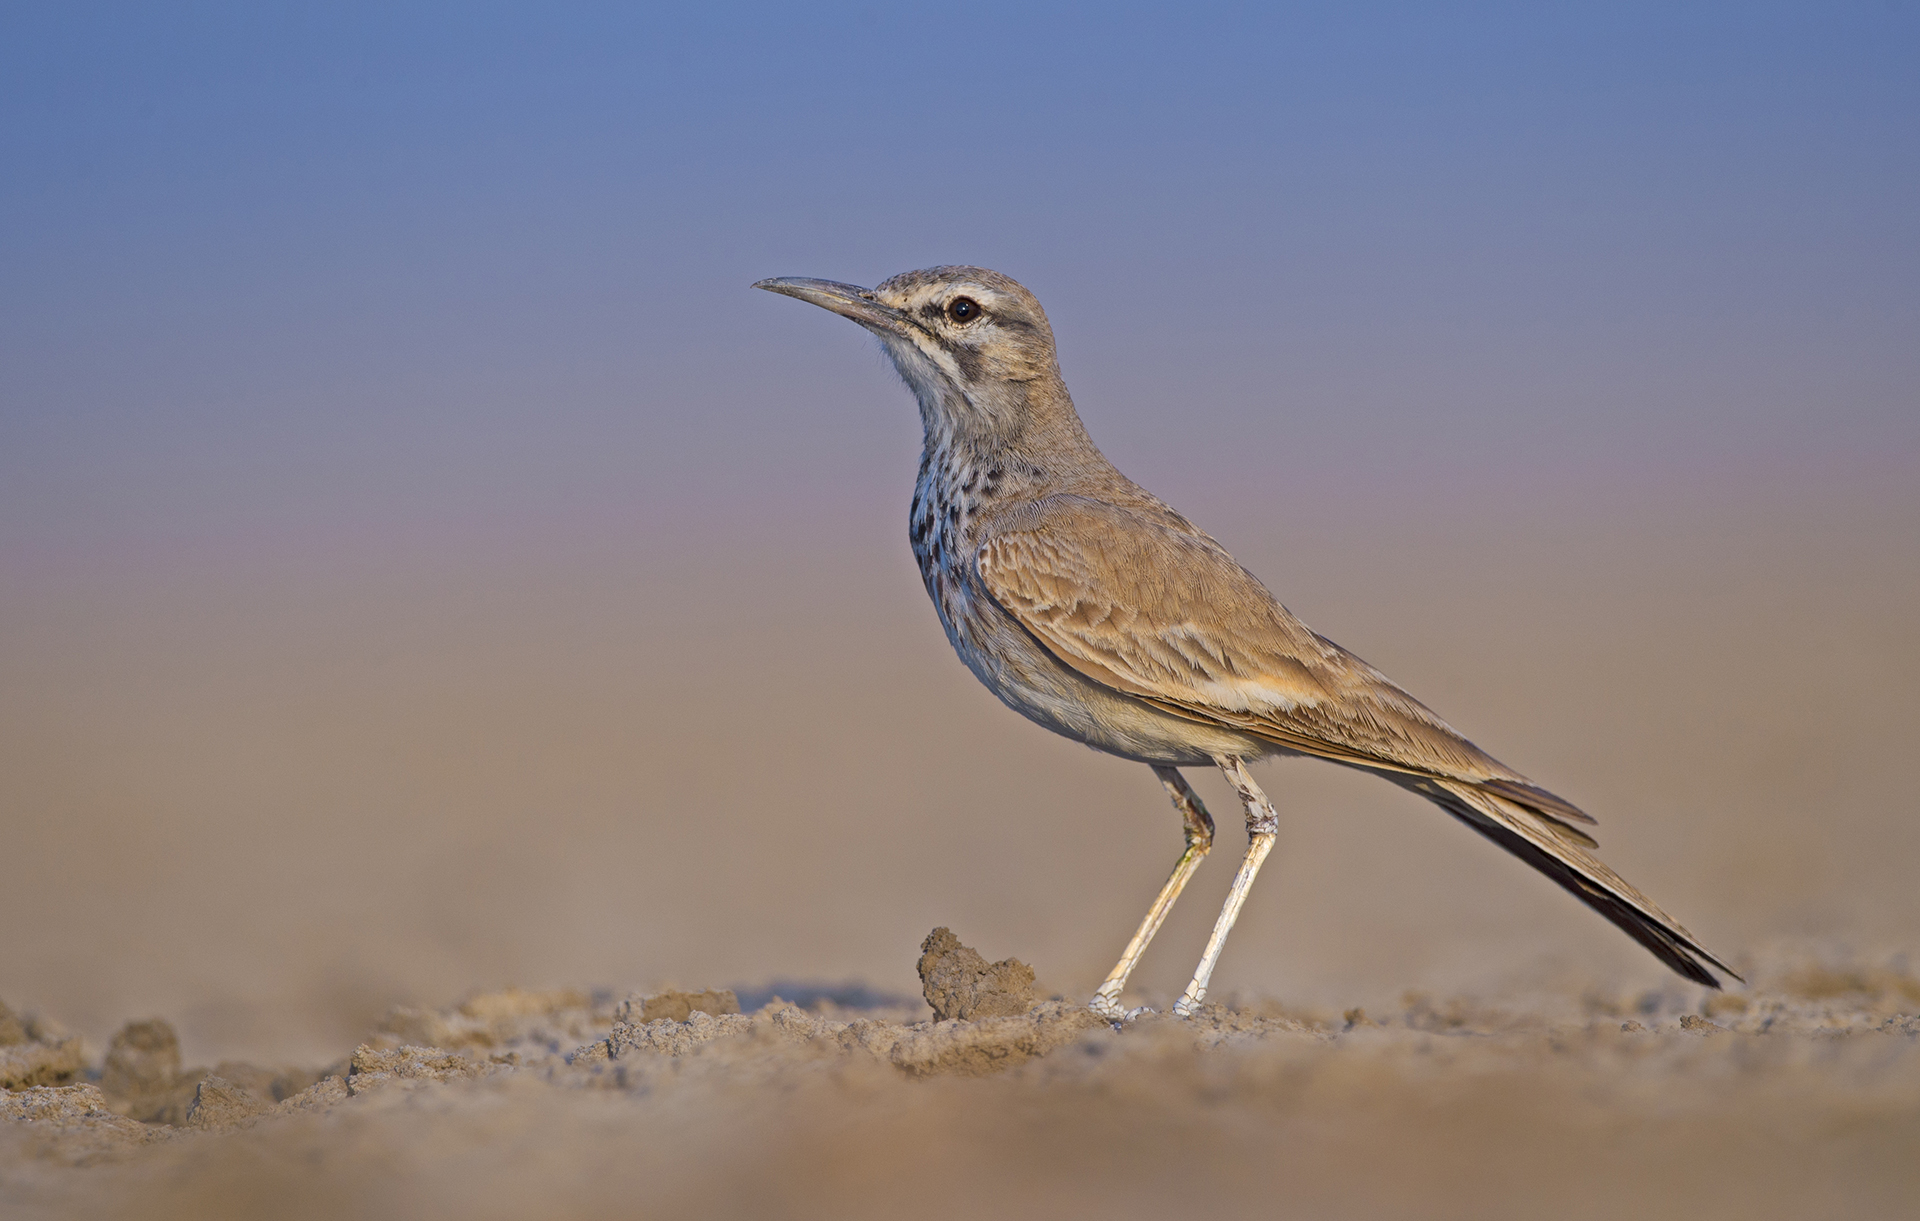 Adaptations such as its long legs and a white belly that reflects heat help the lark survive the harsh climate of the arid regions it inhabits.